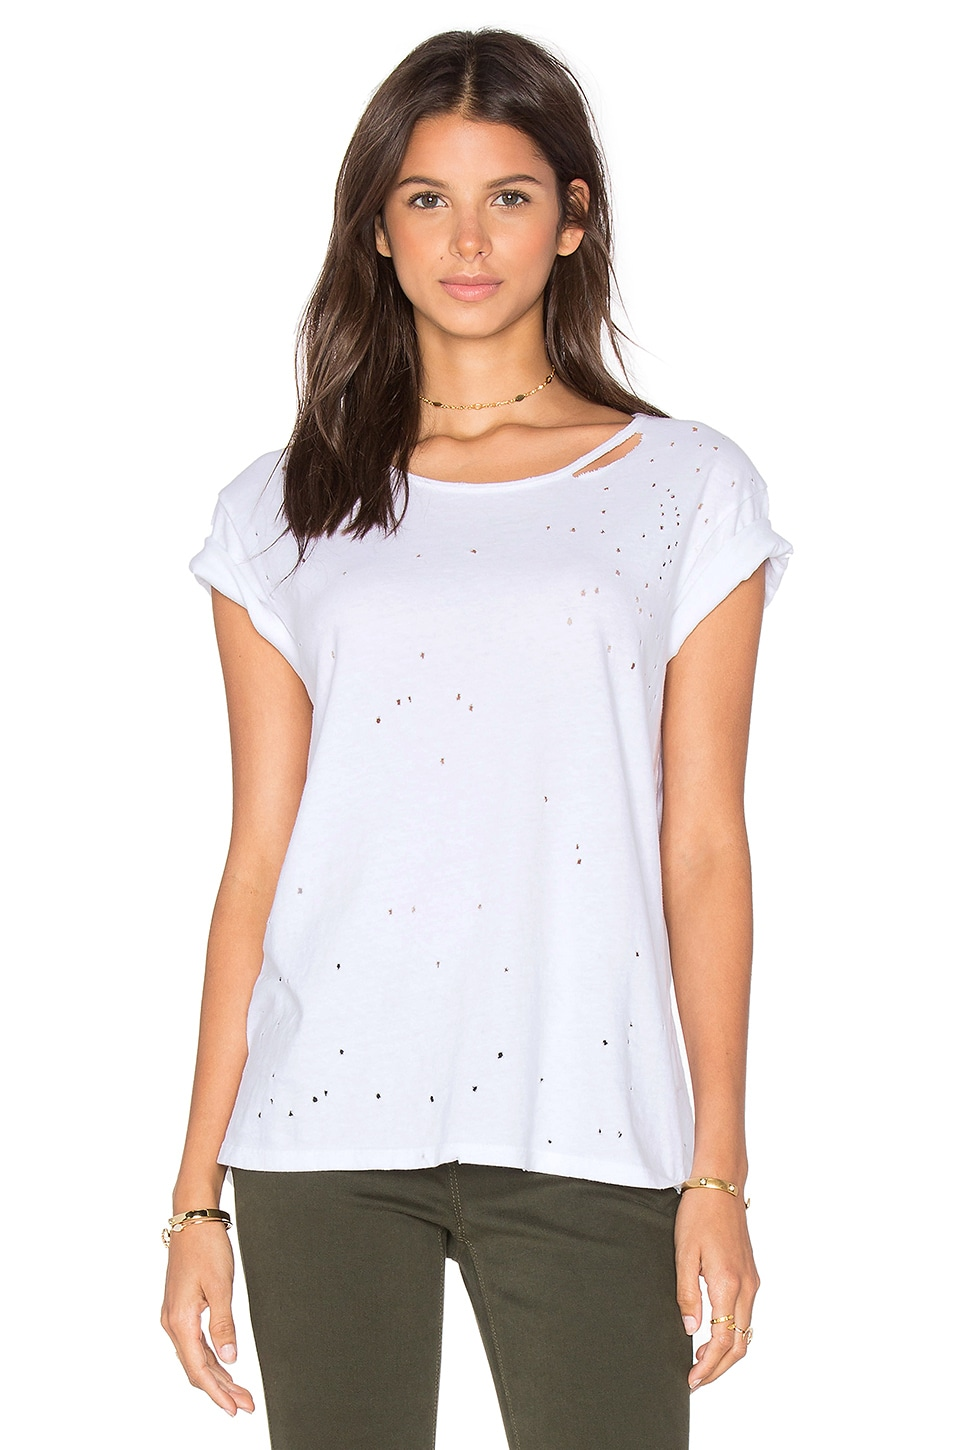 RtA Jewel Distressed Tee in White